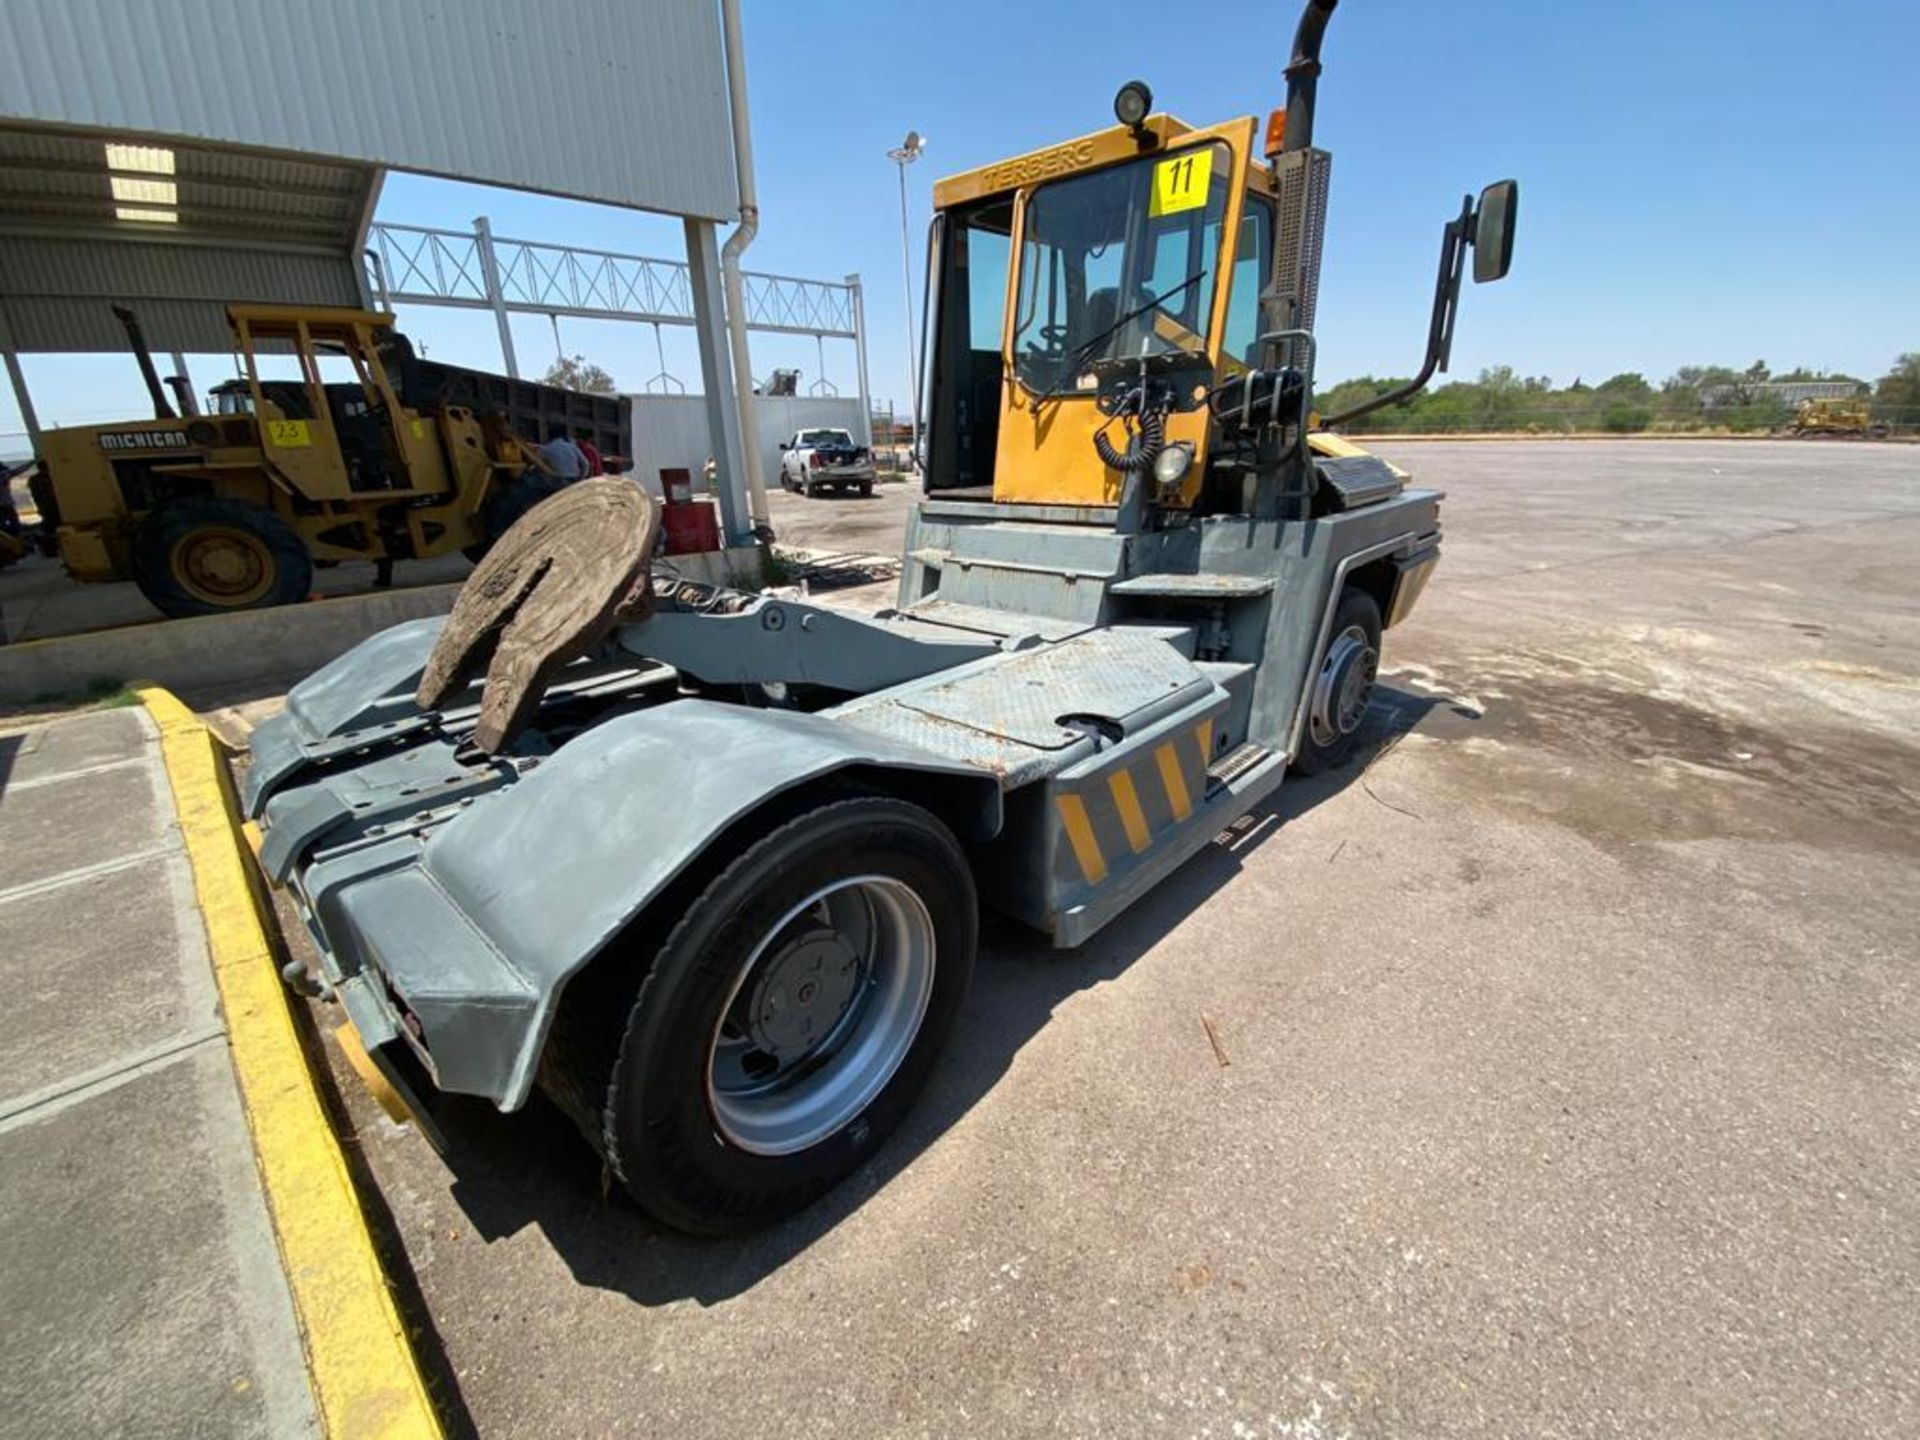 Terberg Capacity 2002 Terminal Tractor, automatic transmission, with Volvo motor - Image 15 of 57